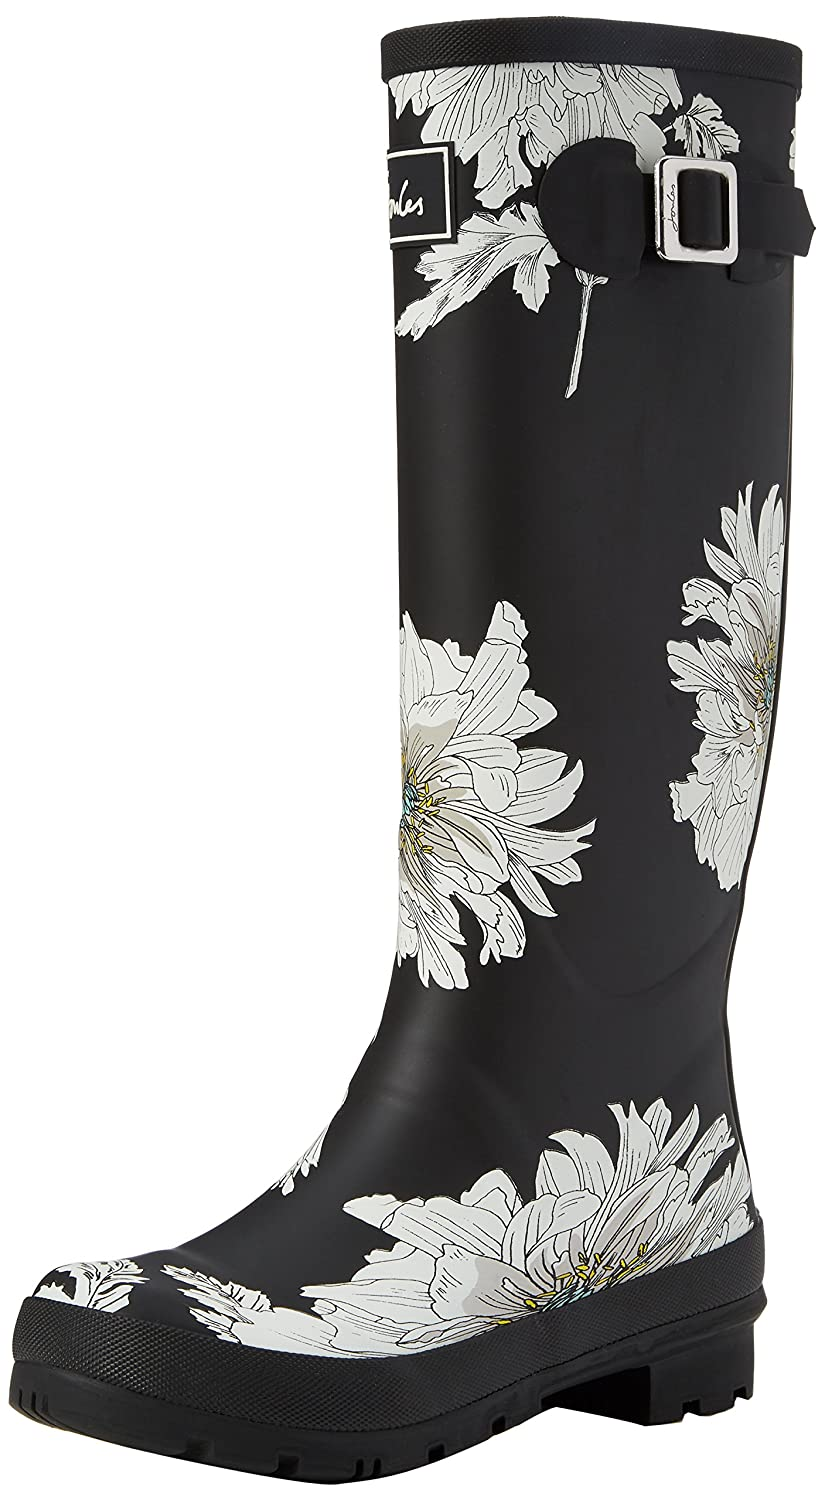 Joules Women's Welly Print Rain Boot B06W2JG22L 9 B(M) US|Black Peony